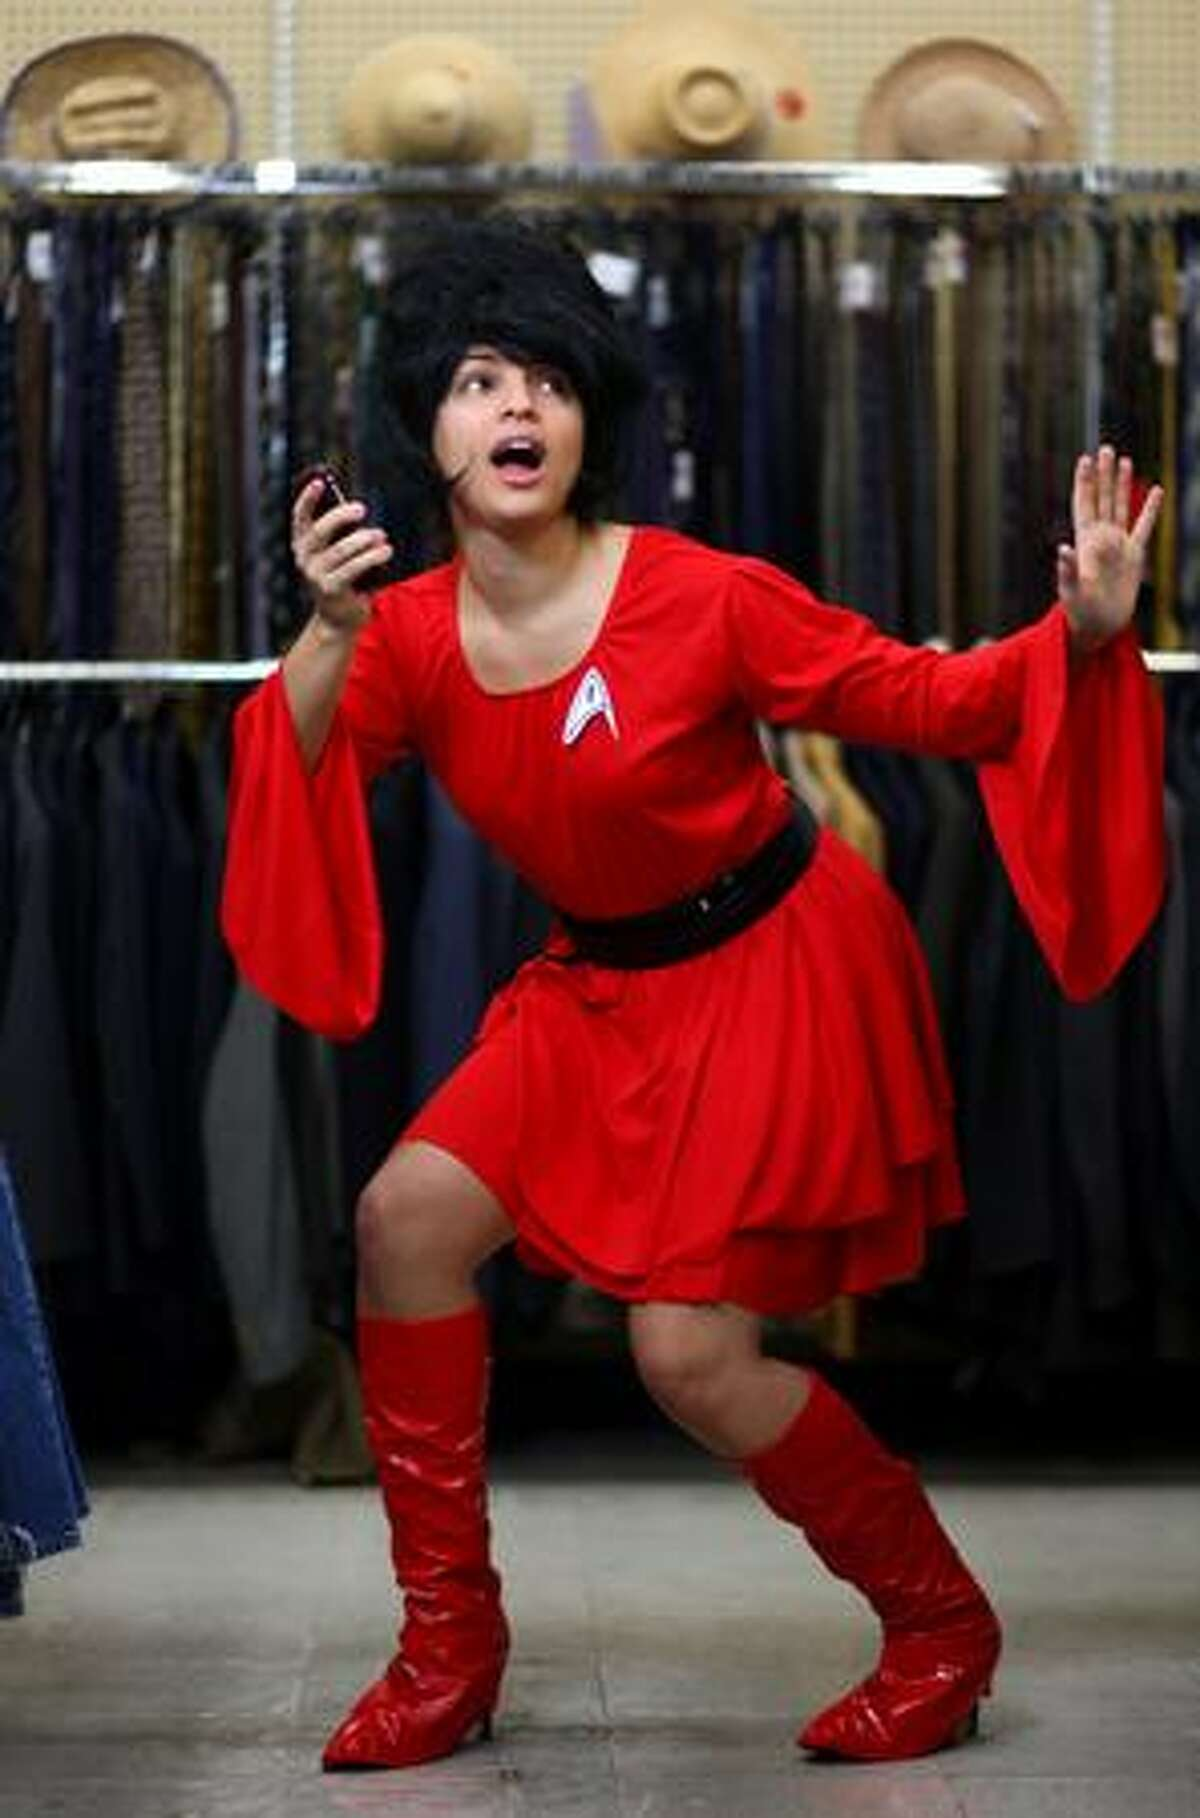 """""""Star Trek"""" -- Wig, $7.99; boot covers, $4.99; belt, $1.99; dress, $14.99. Photographed at Value Village in Seattle."""